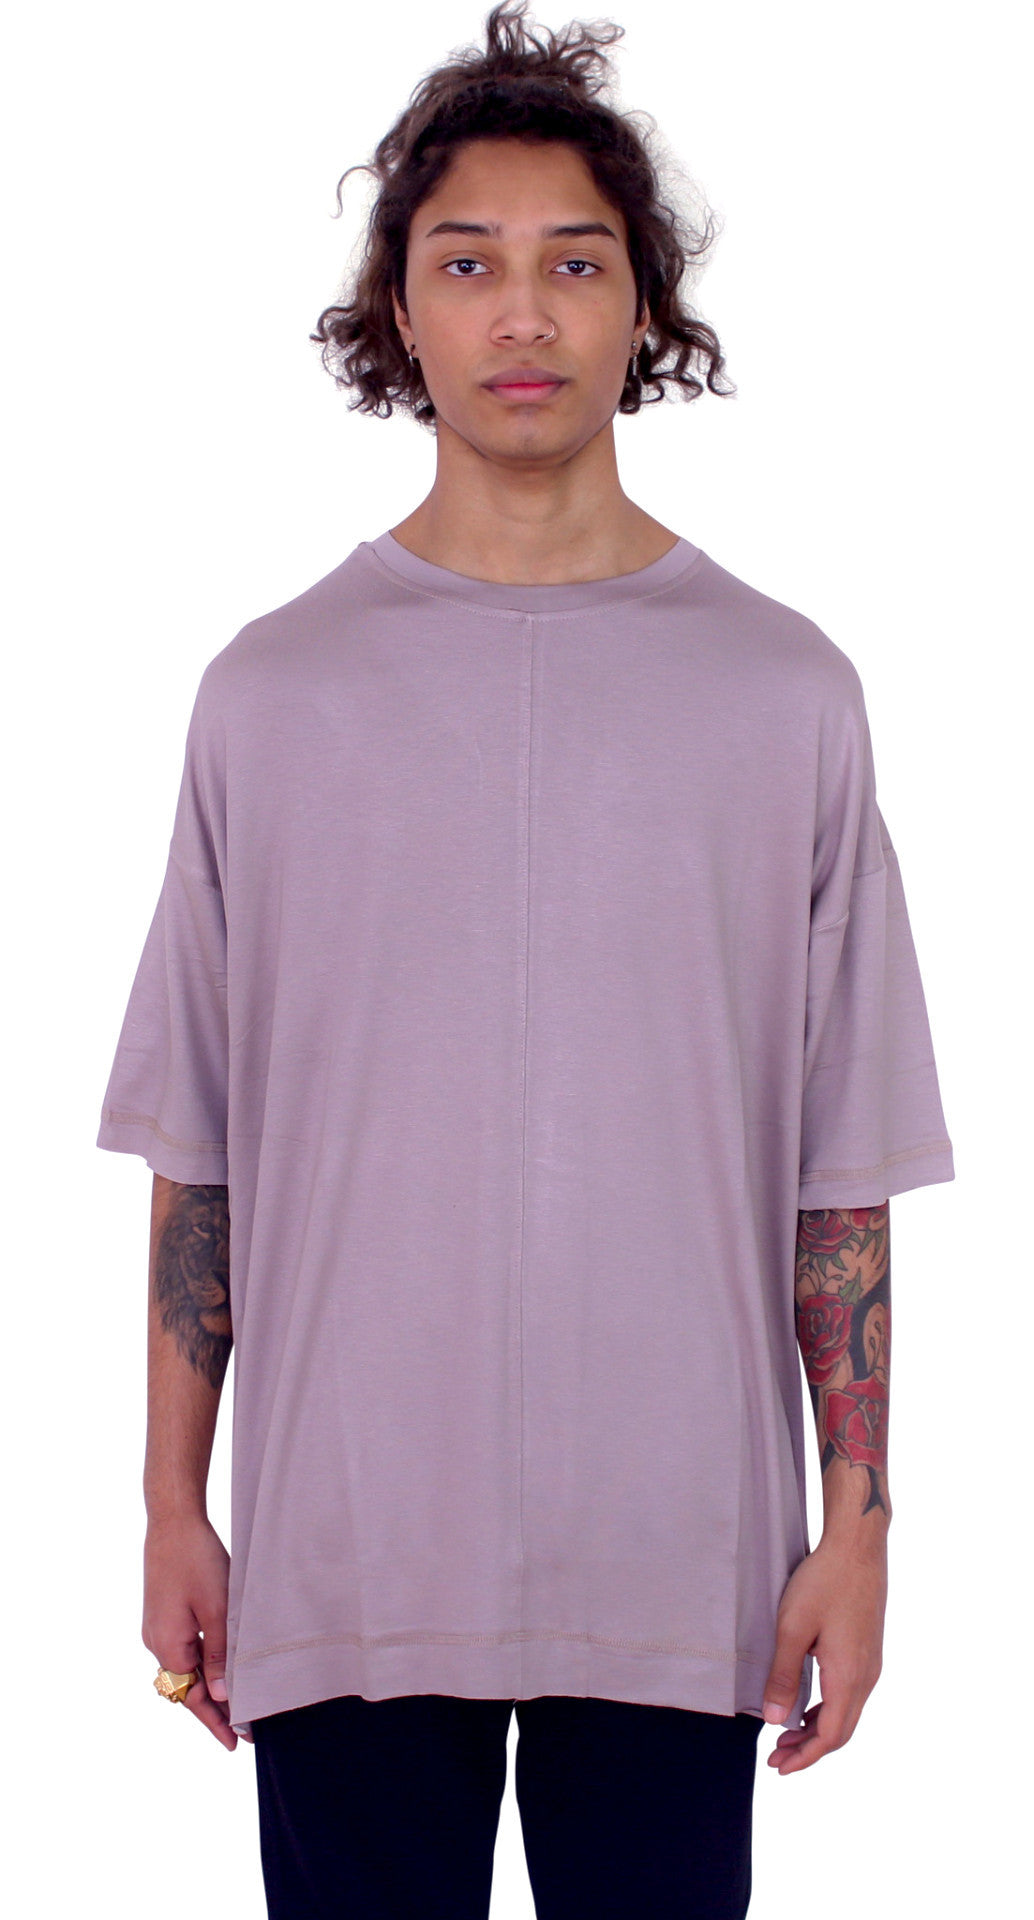 DROPPED SHOULDERS TEE - ROSE